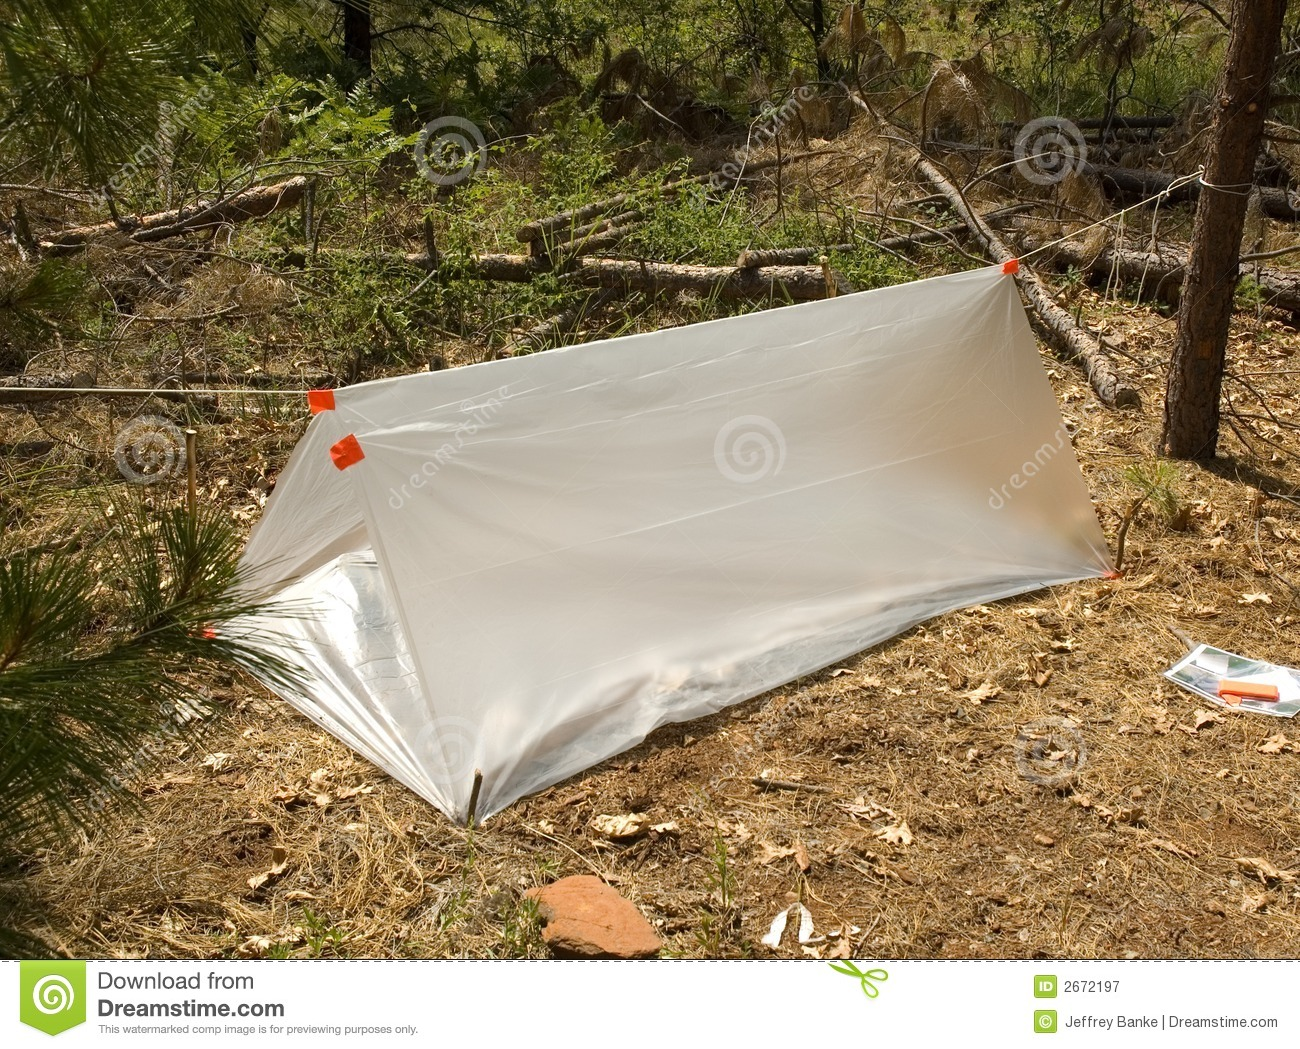 Temporary Shelter Survival Disaster : Temporary survival shelter royalty free stock photography